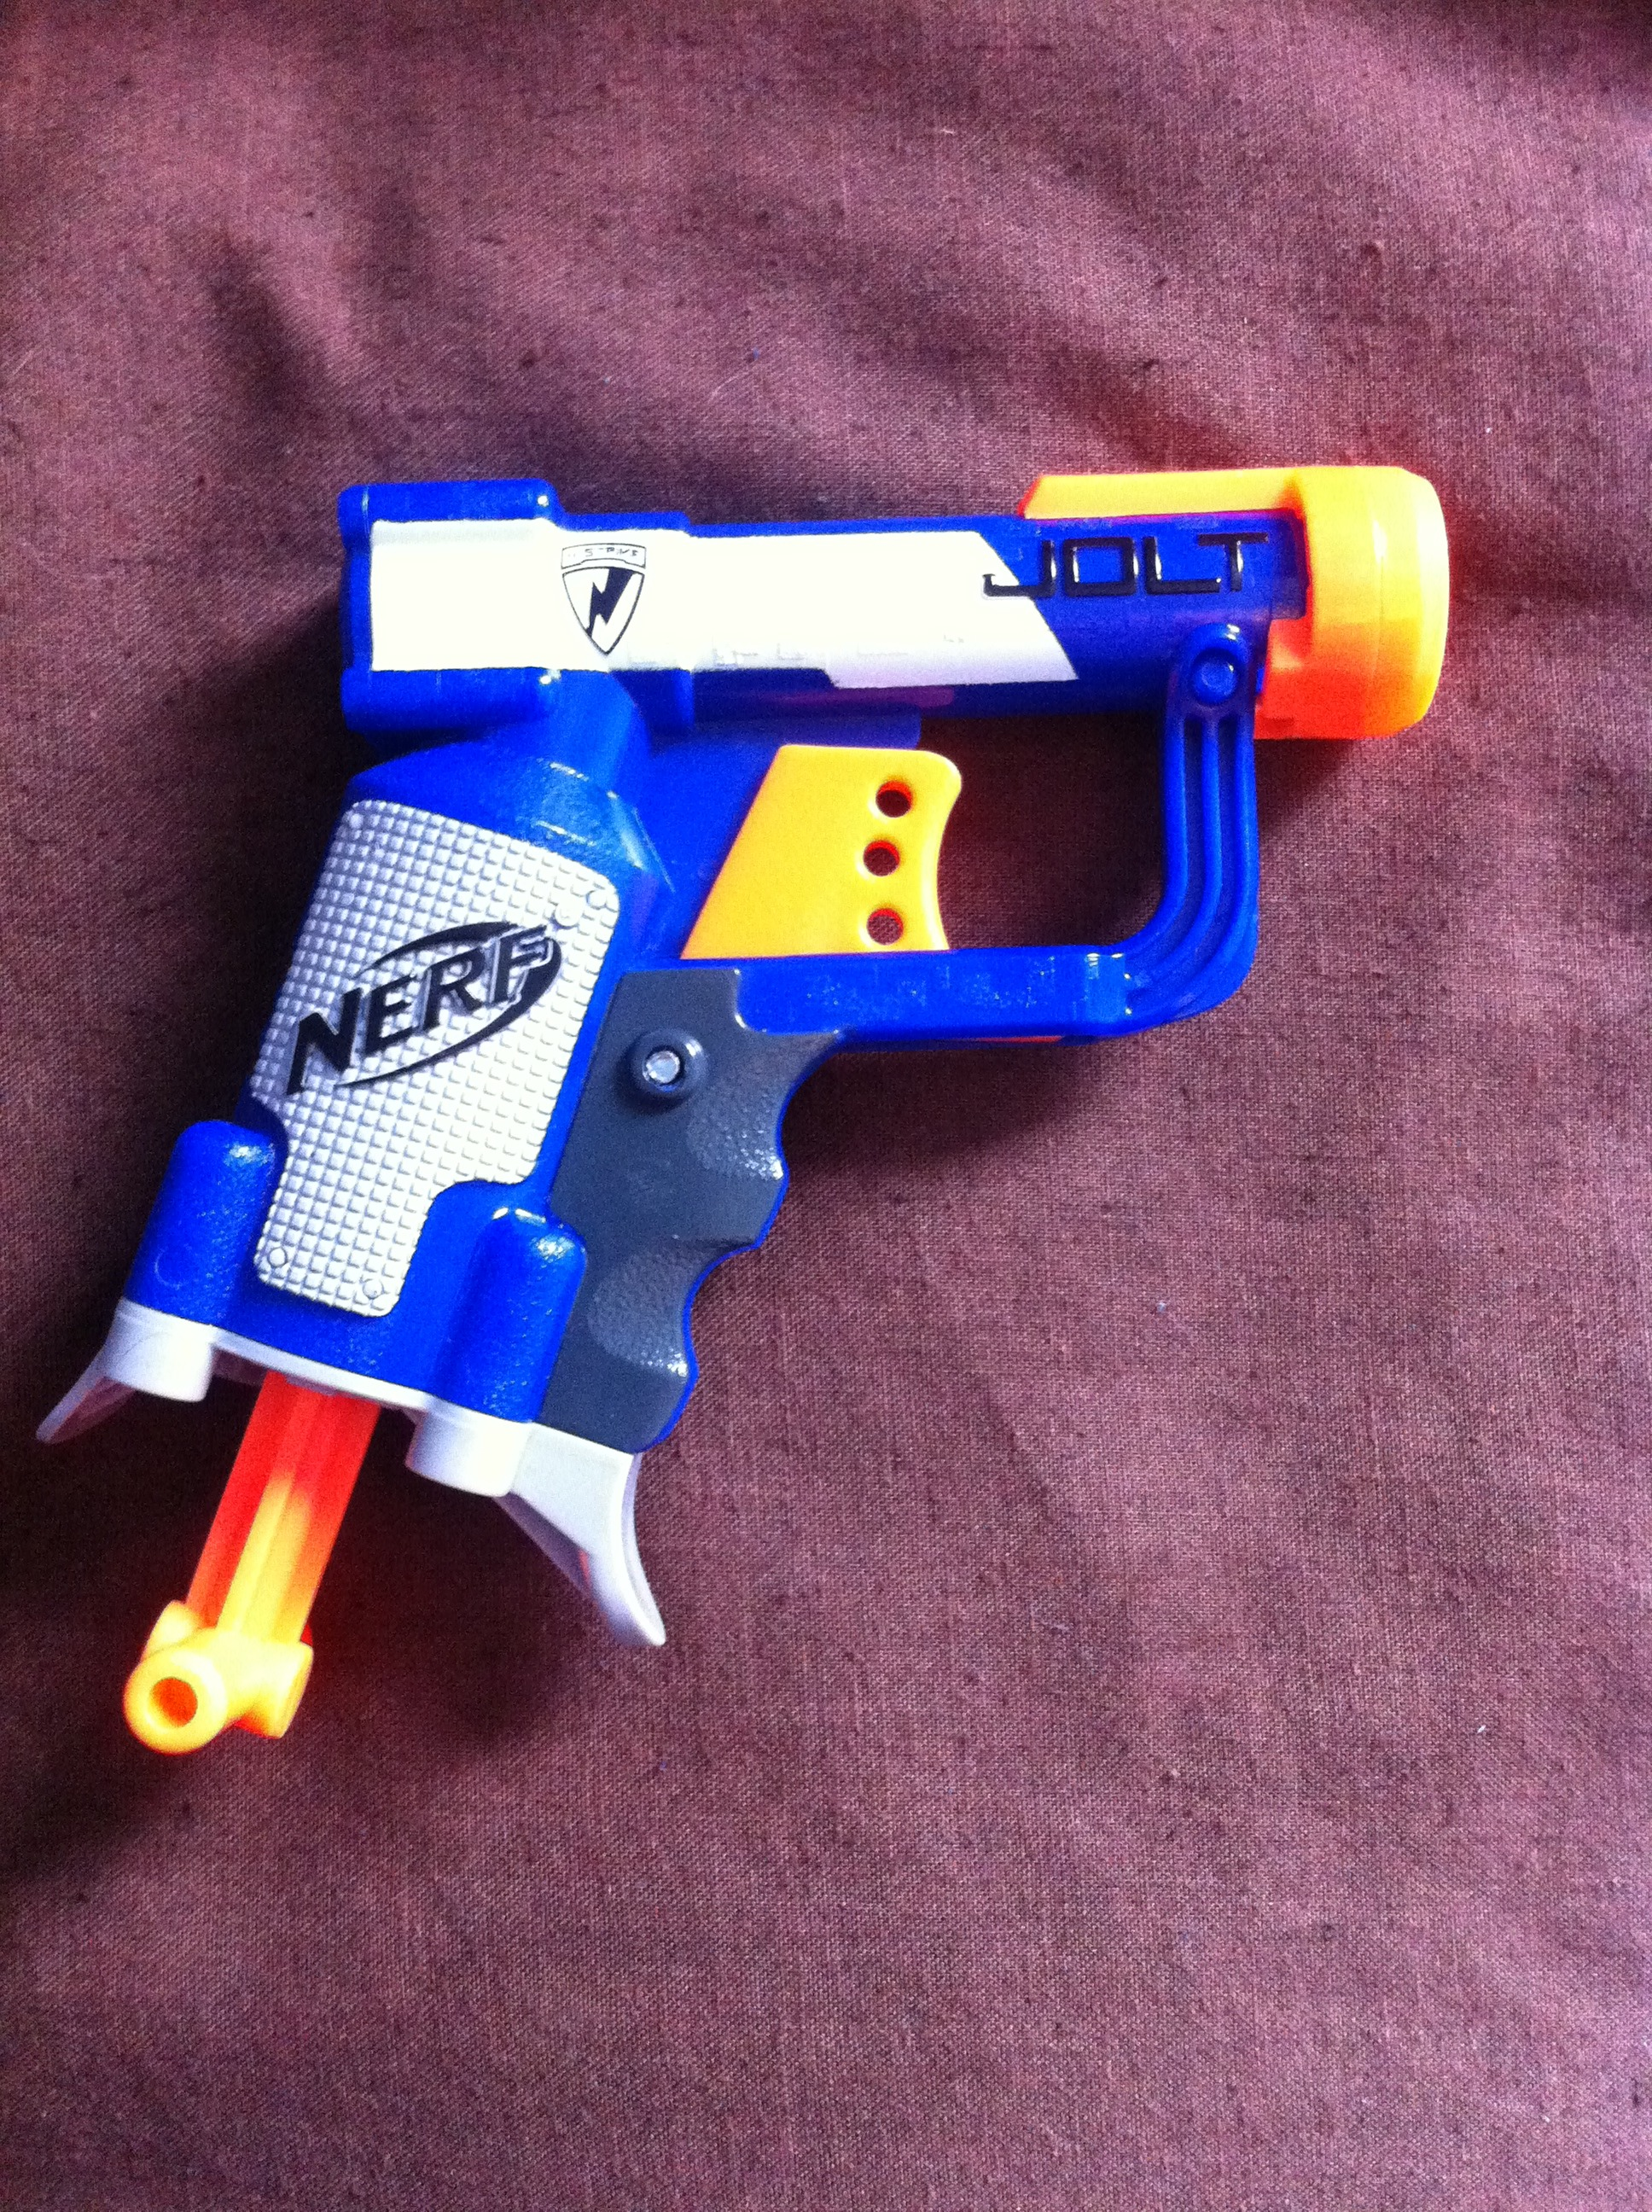 How To Remove The Air Restrictor In A Nerf Jolt